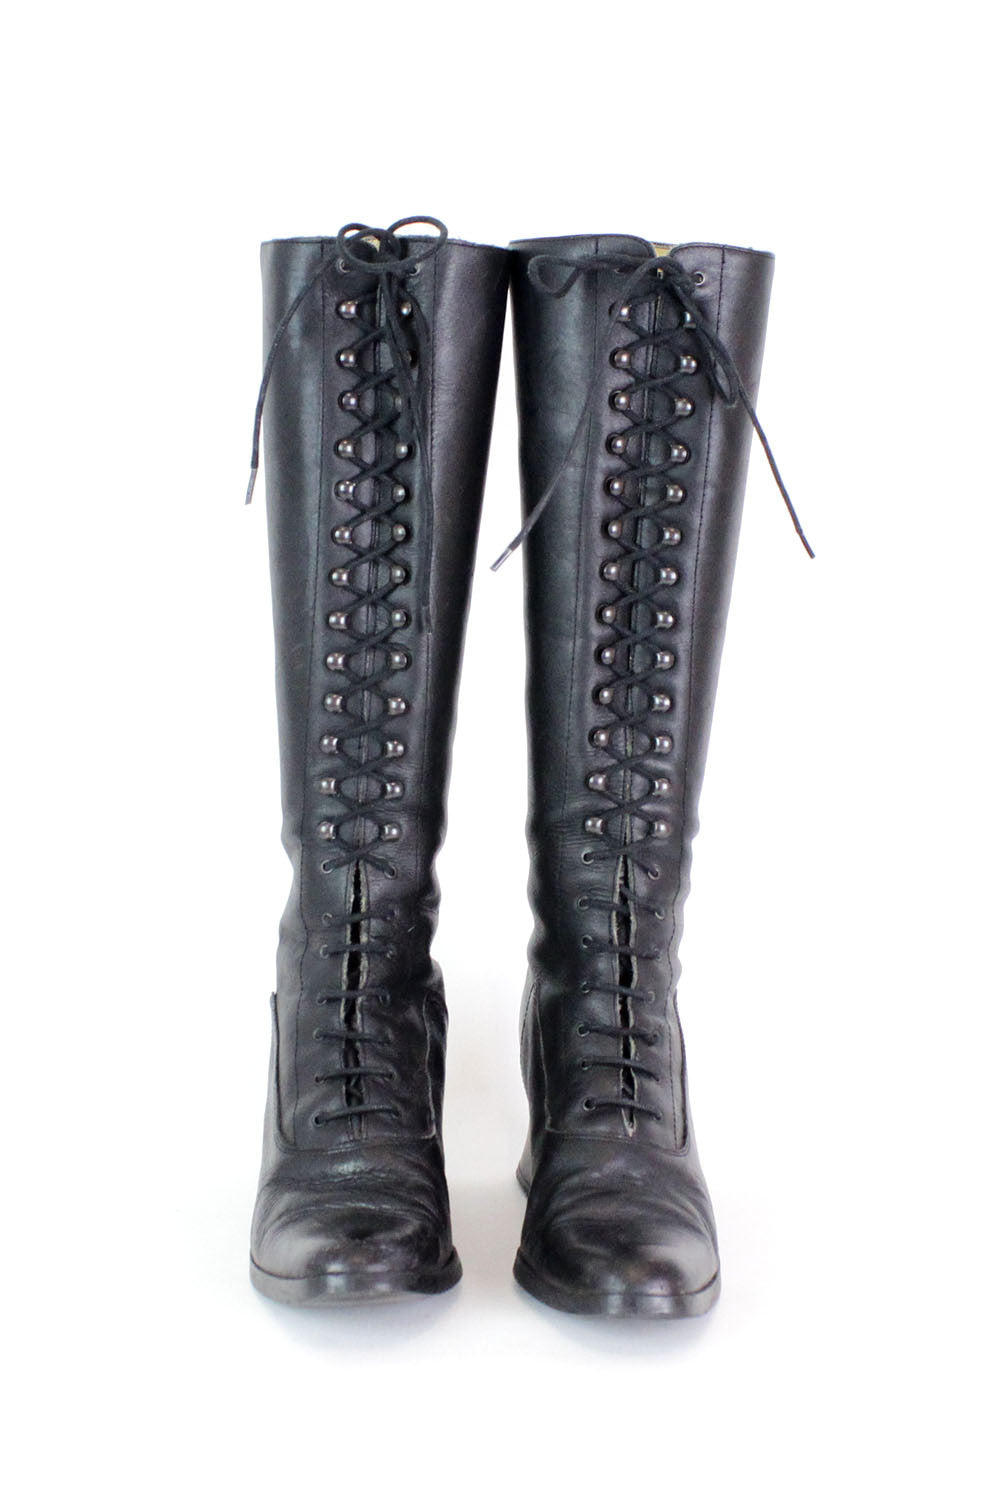 Black Lace-Up Boots 8.5